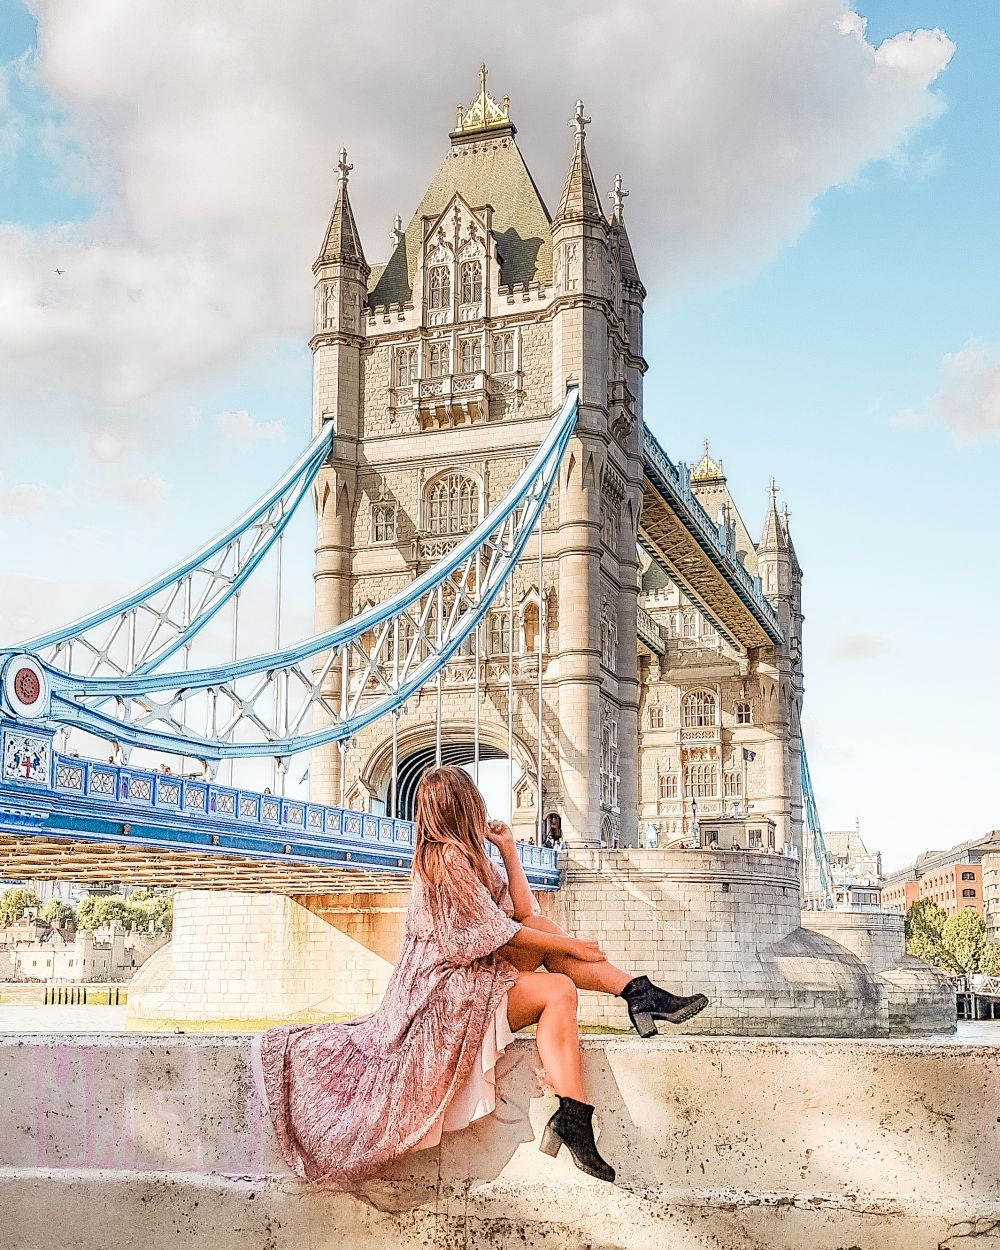 Must visit places in London